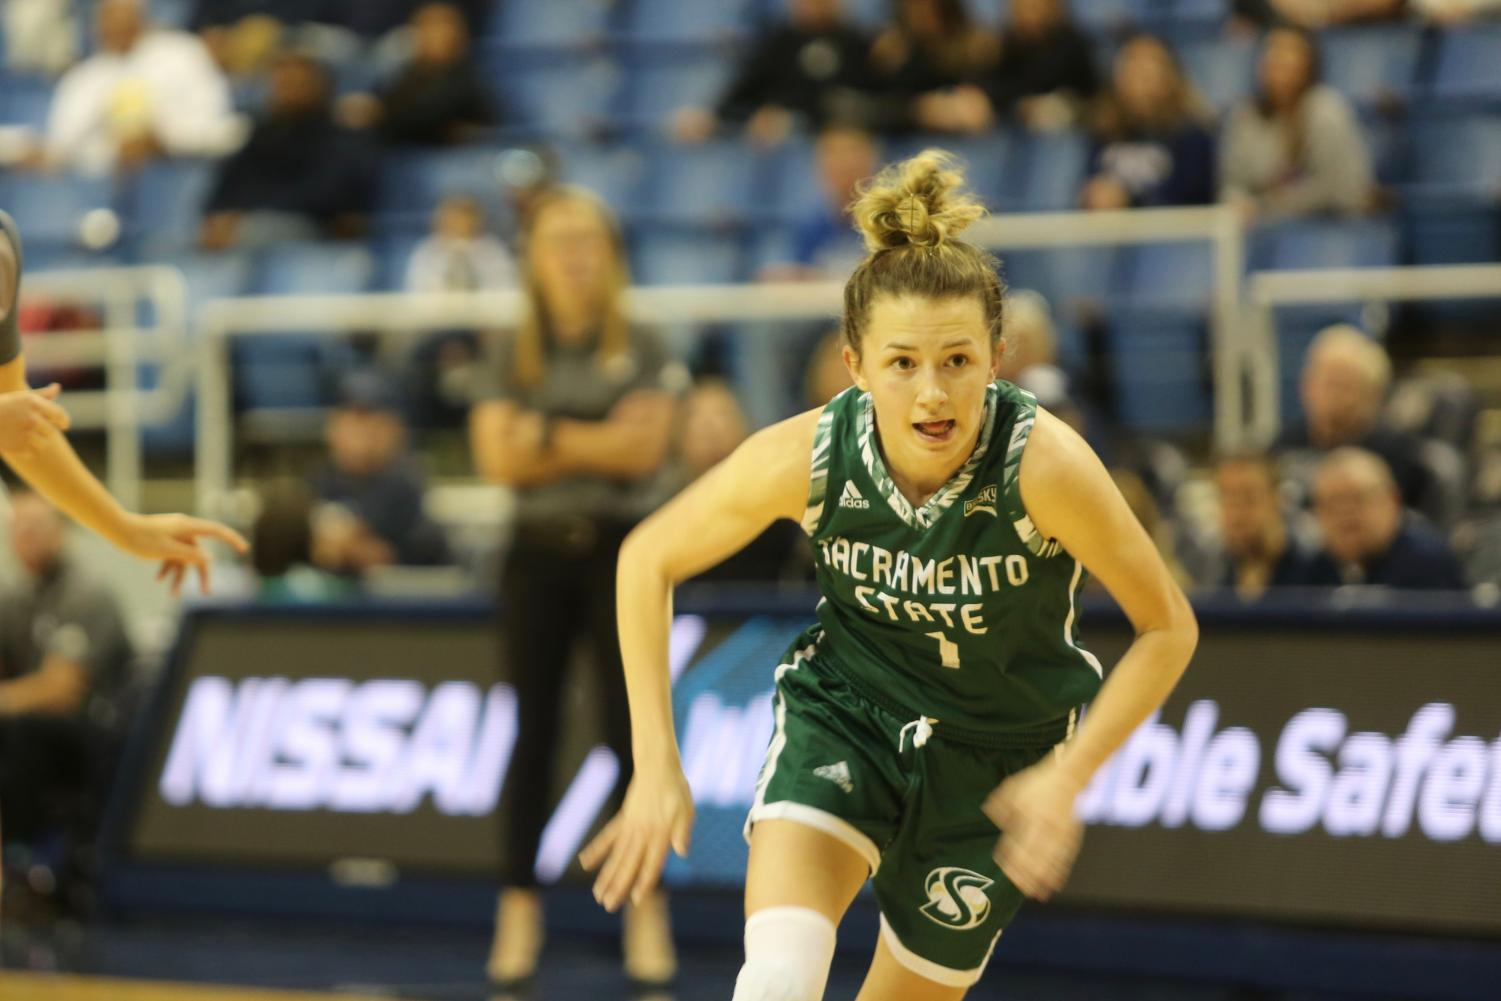 Sac State sophomore point guard Milee Enger pursues a loose ball in the third quarter at Nevada on Saturday, Nov. 9 at Lawlor Events Center in Reno, Nevada. The Hornets lost on the road to Cal Poly on Wednesday 62-43.